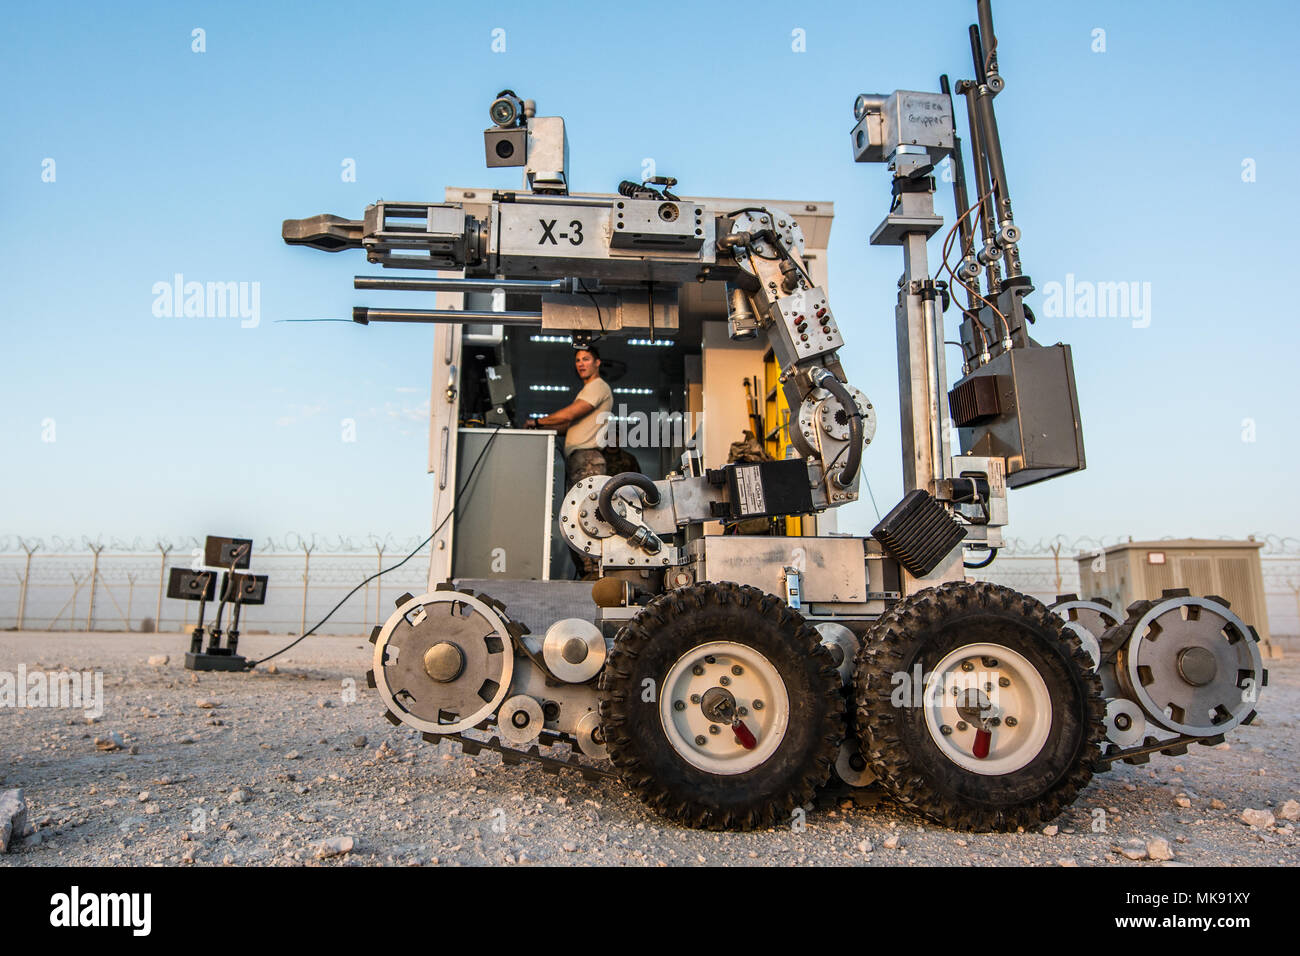 Remotec Stock Photos Images Alamy Mk Wiring Devices Qatar Us Air Force Senior Airman Taylor Lahteine Explosive Ordnance Disposal Journeyman Assigned To The 379th